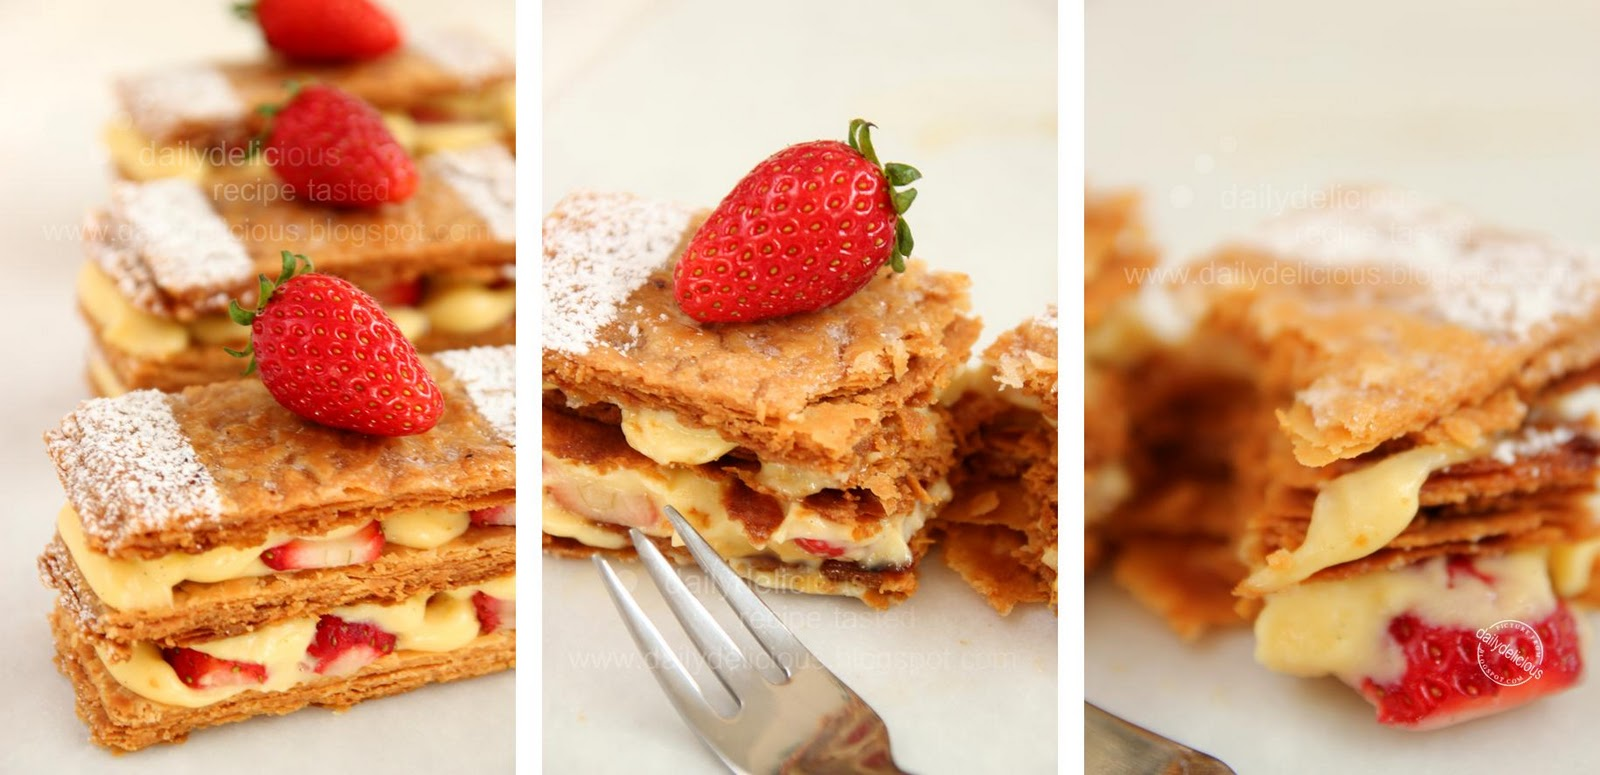 dailydelicious: Mille feuille: Delicious, crunchy, sweet ...